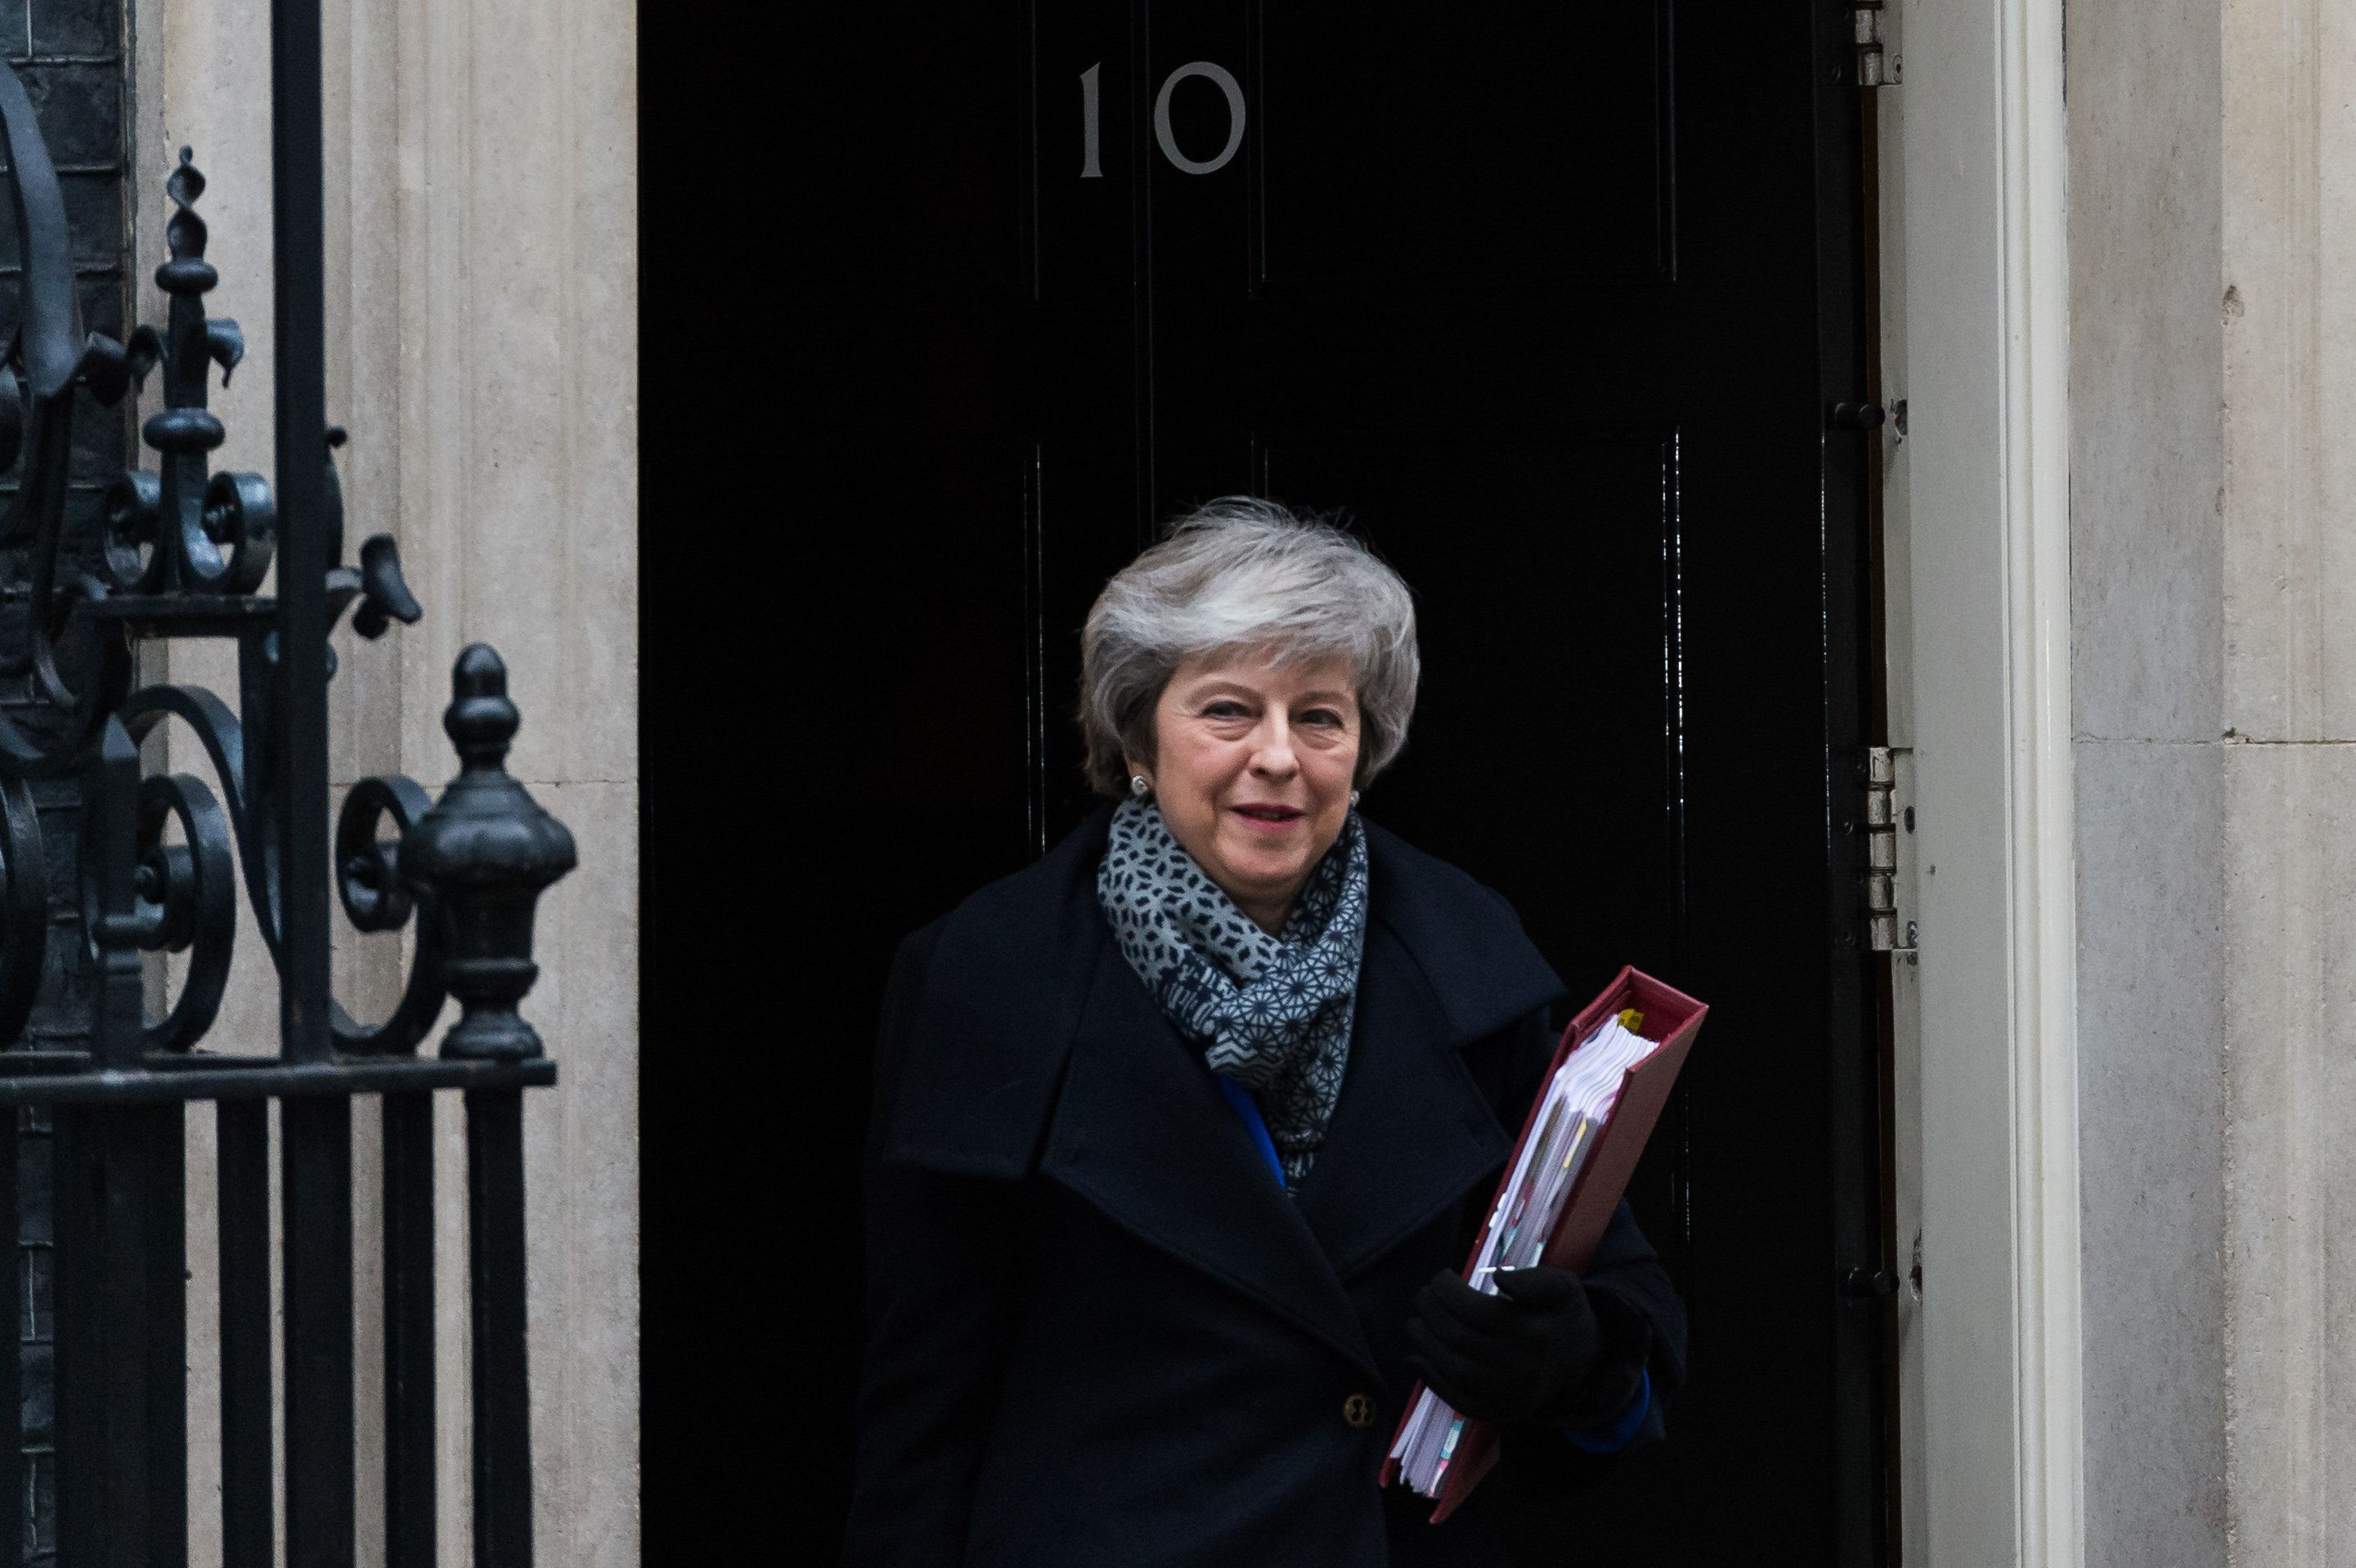 Westlake Legal Group 5c3f2d492500003300c58f87 UK Prime Minister Theresa May Faces No Confidence Vote